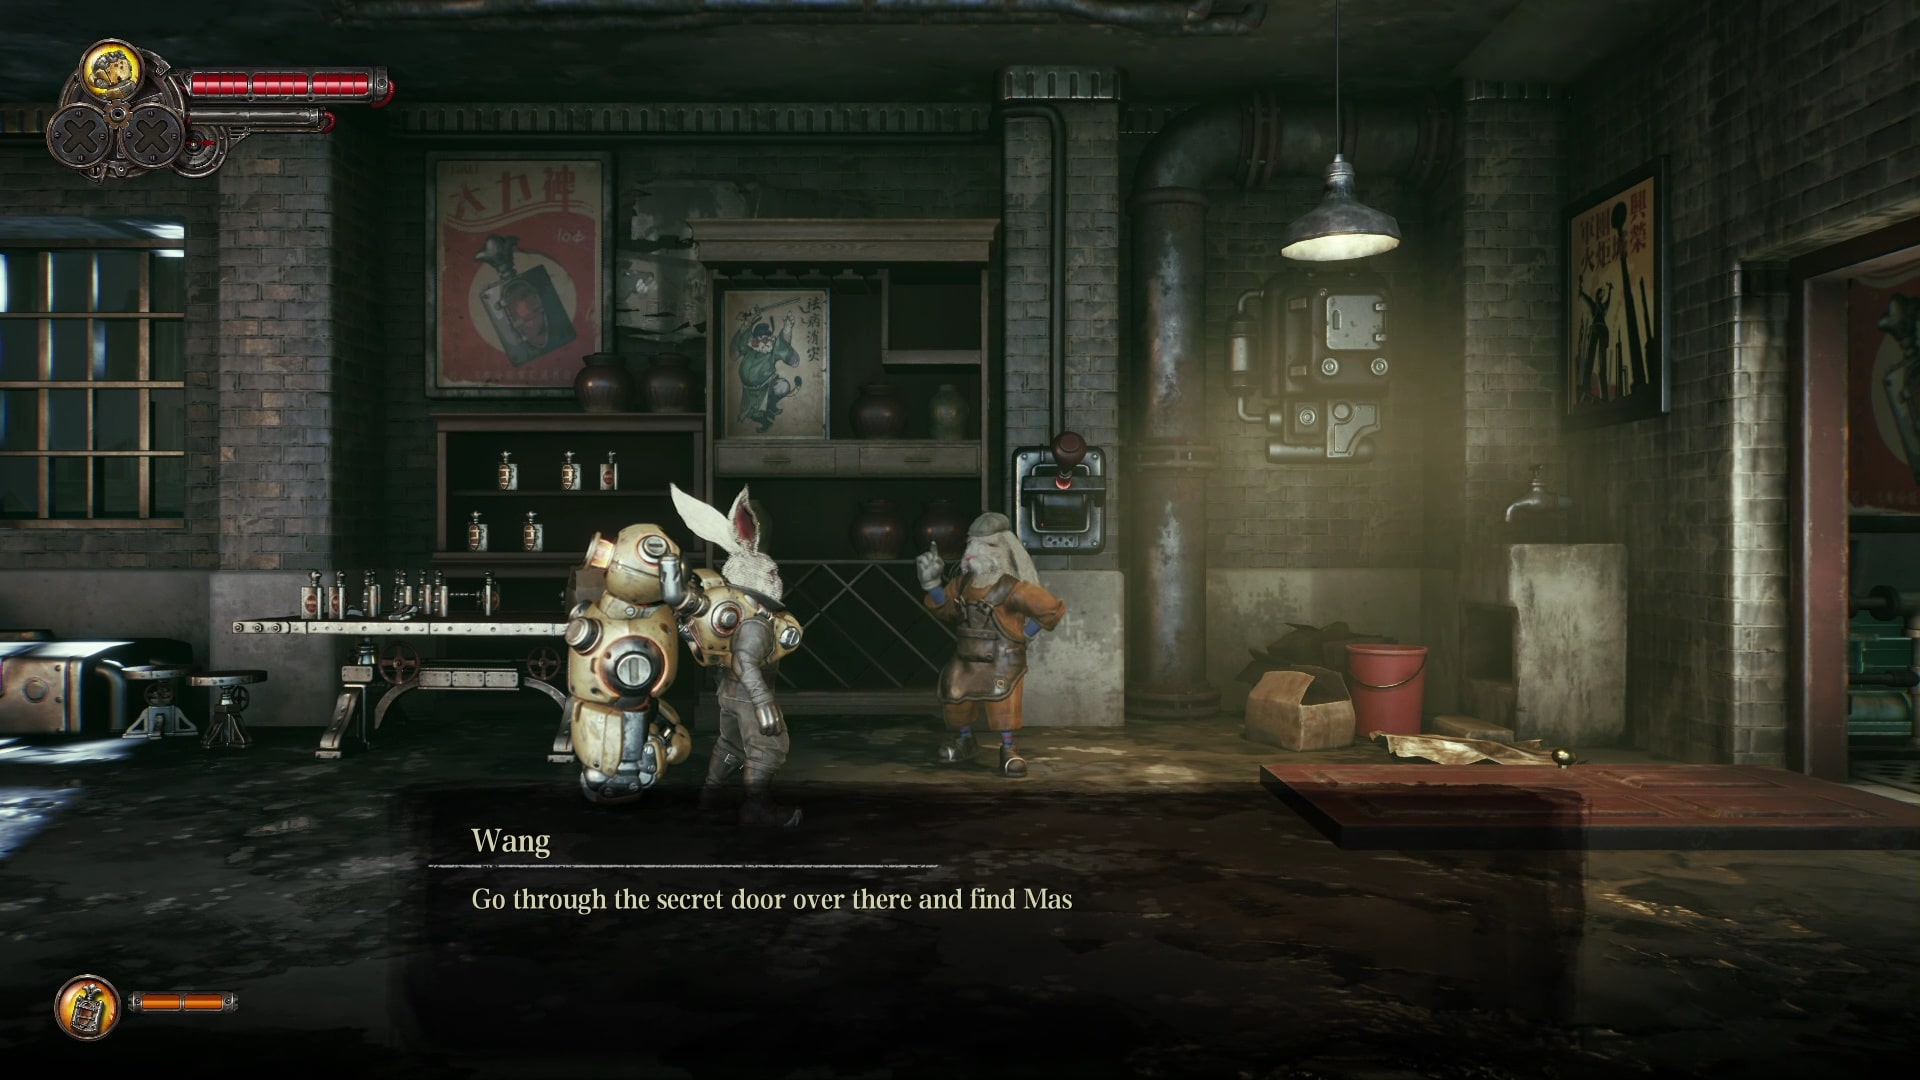 Almost all dialogue with NPCs is fully dubbed and features very good, professional English voice actors.